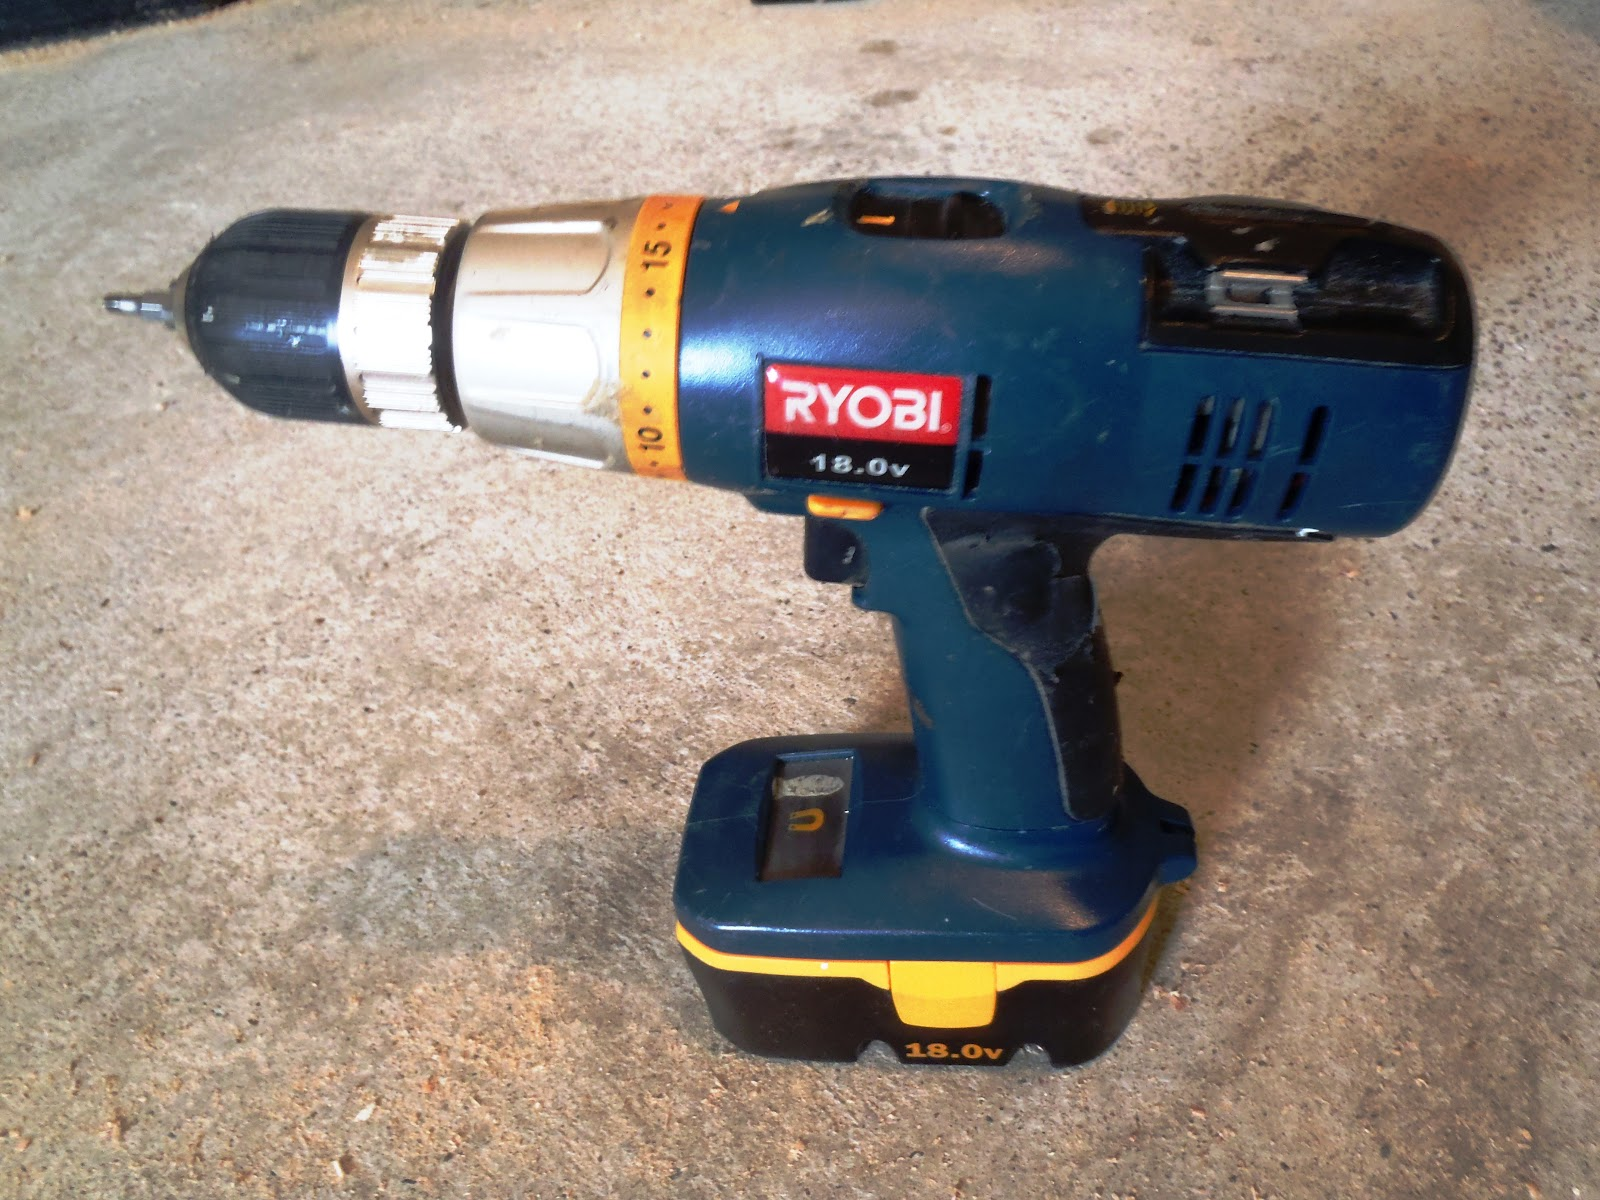 Carpenter power tools - photo#18